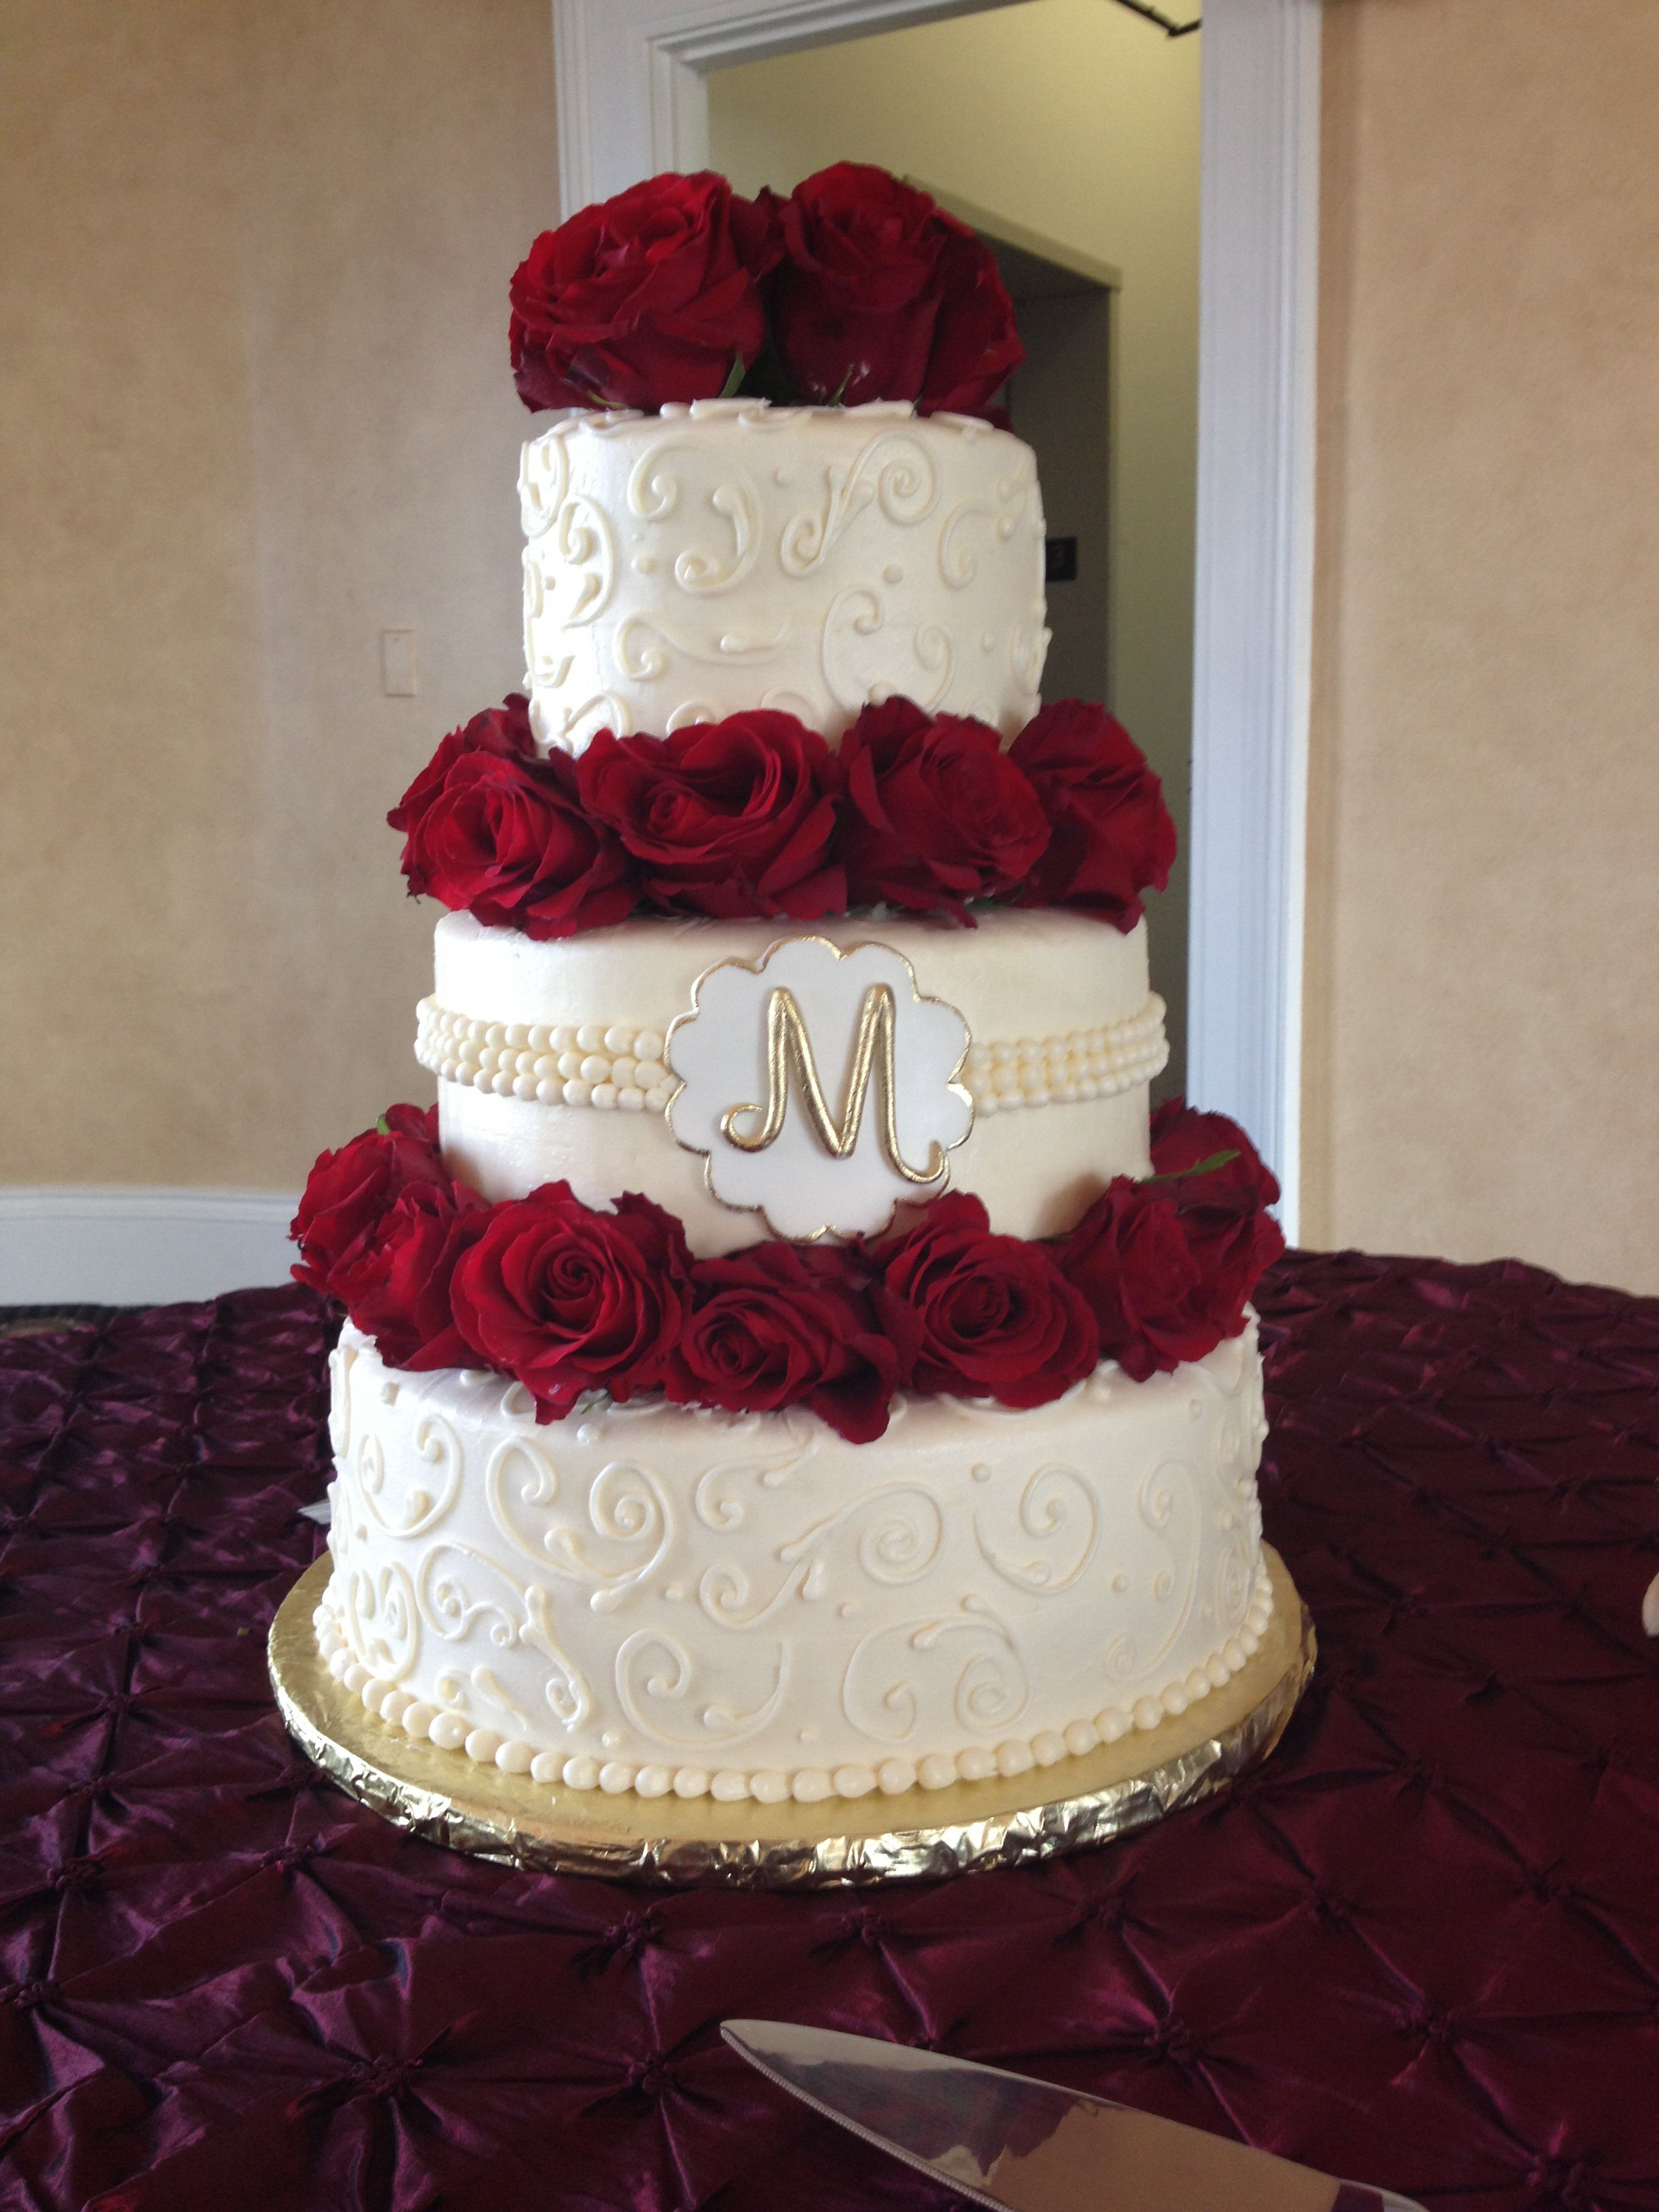 Red rose and Gold accent buttercream wedding cake  Wedding cake     Red rose and Gold accent buttercream wedding cake  Wedding cake delivered  to The Italian Club in Tampa Florida